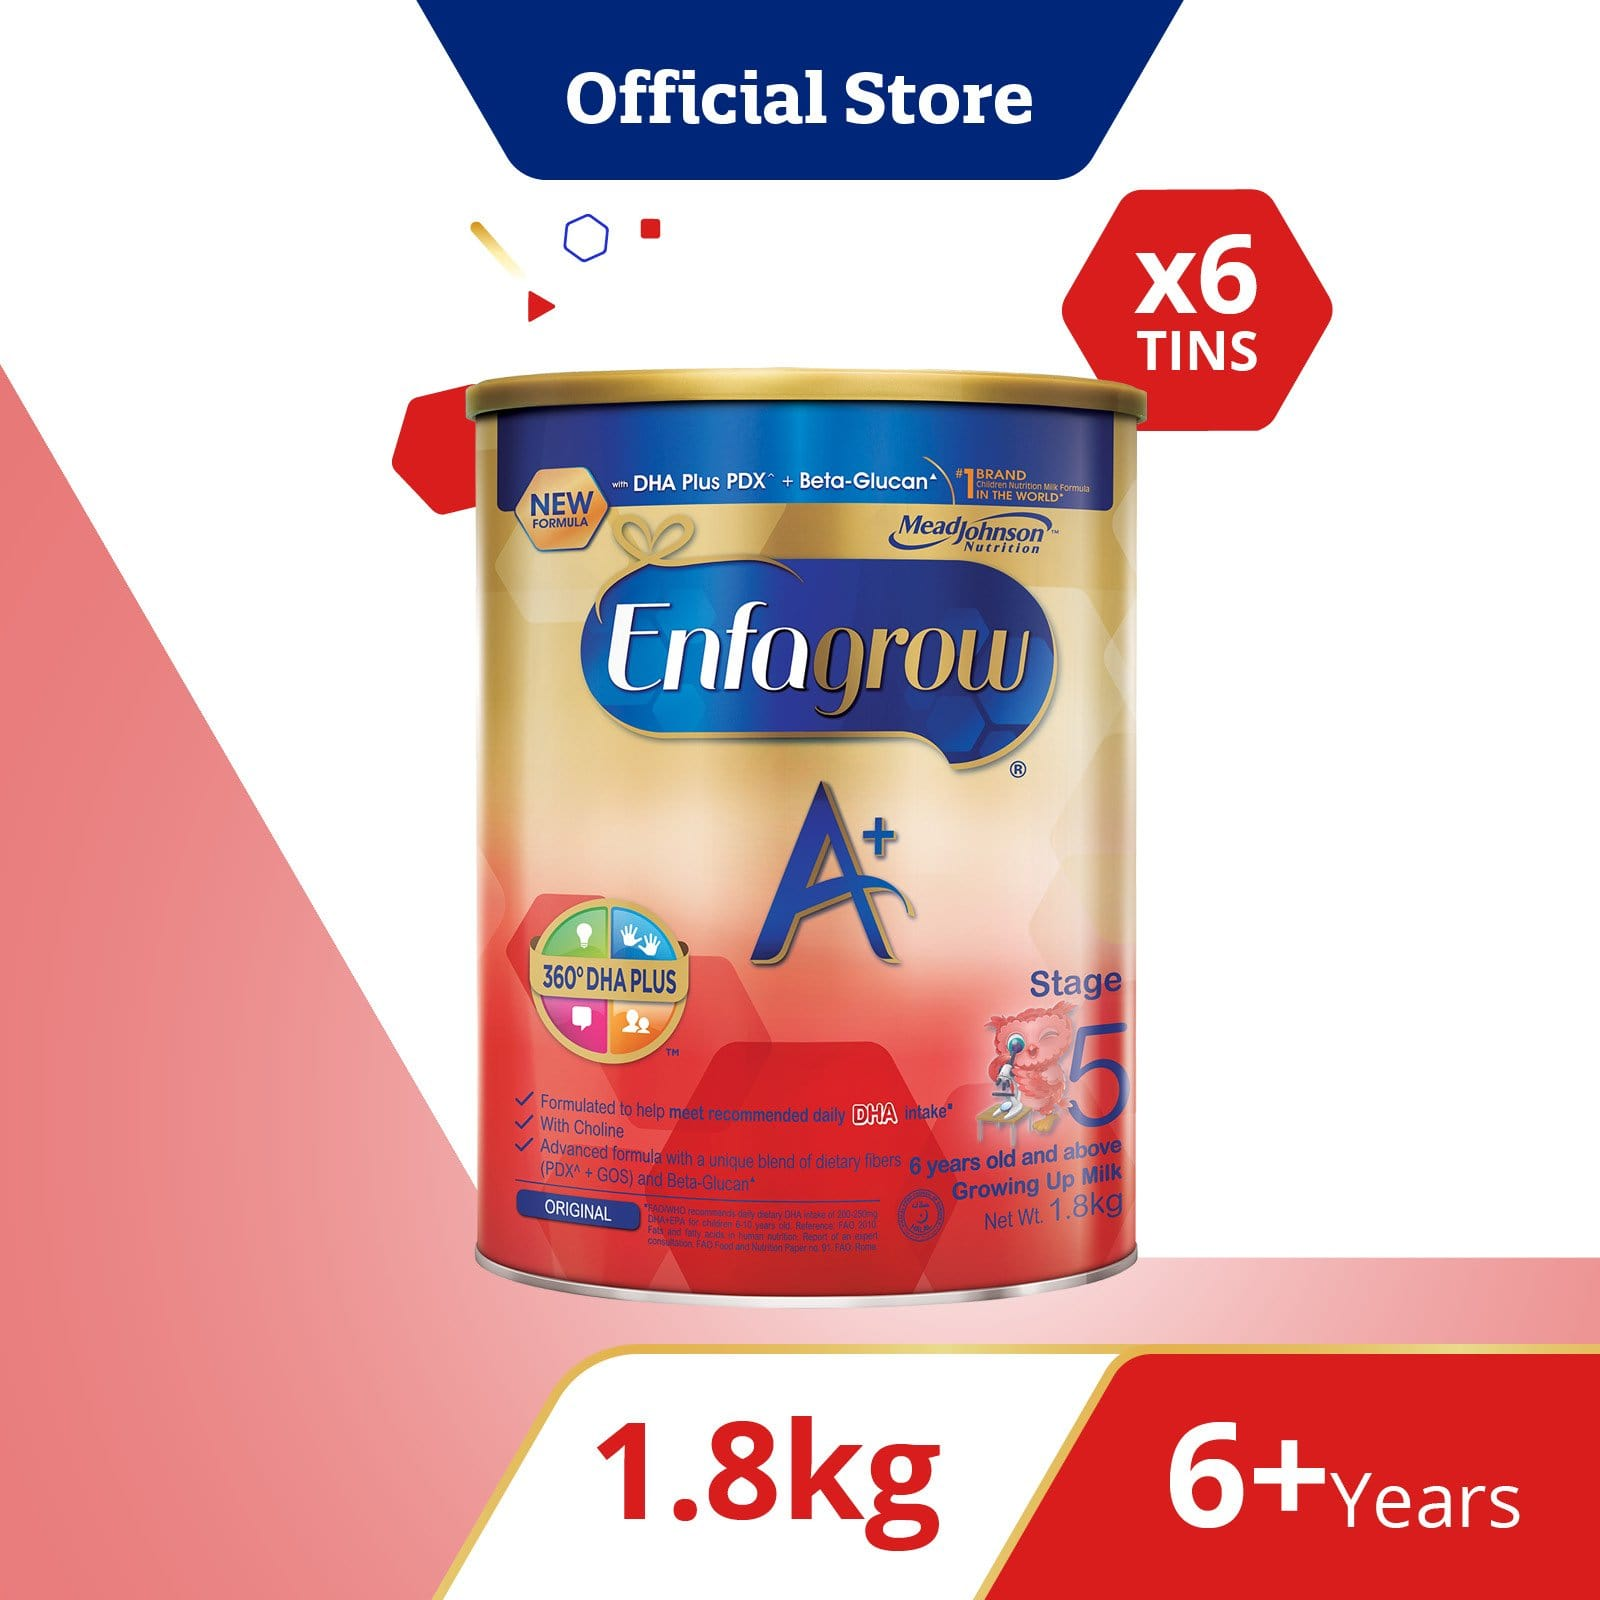 Enfagrow A+ Stage 5 (1.8kg) Bundle of 6